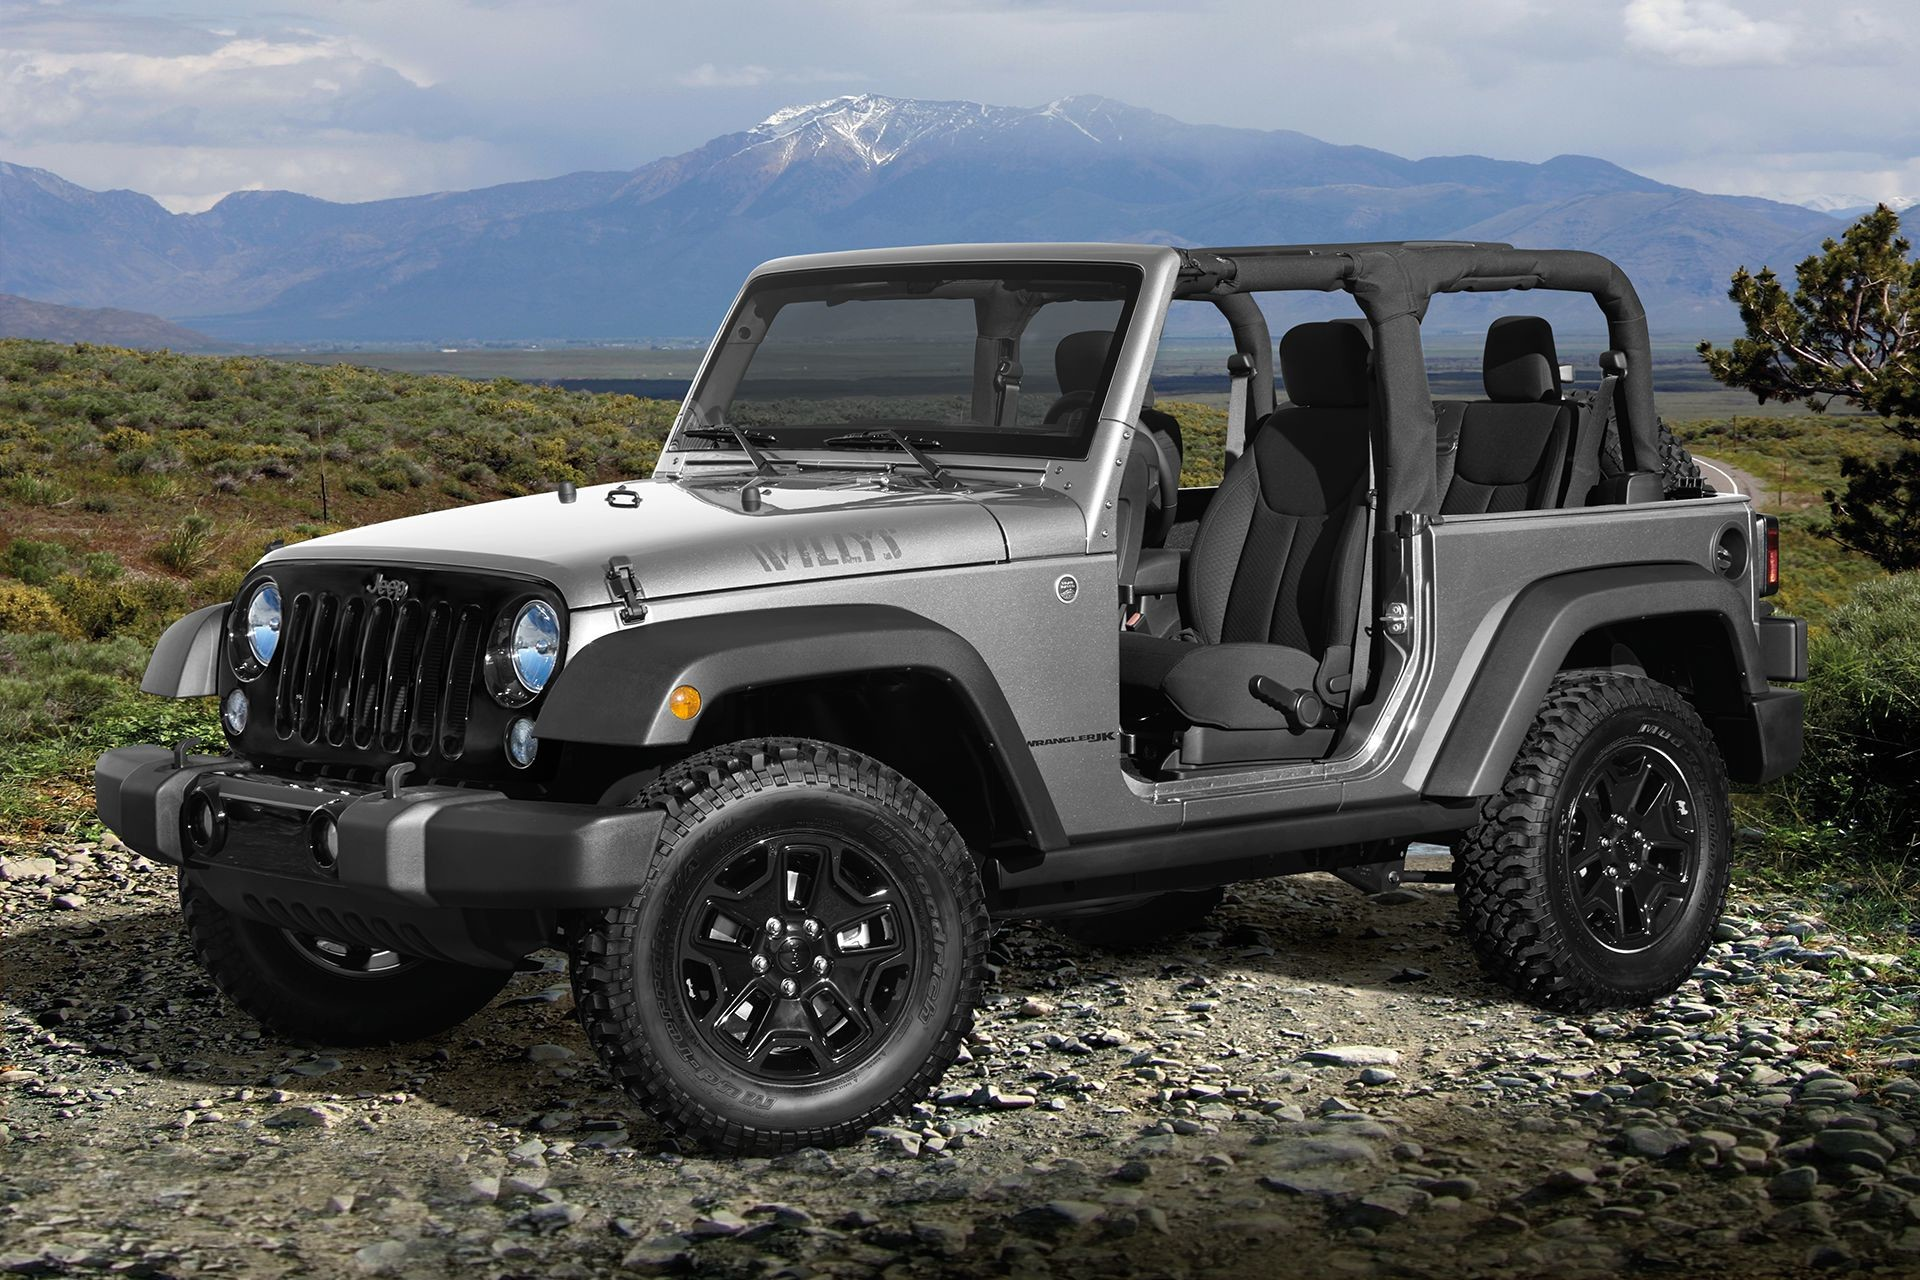 2018 Jeep Wrangler Trail Rated 4x4 | Jeep Canada